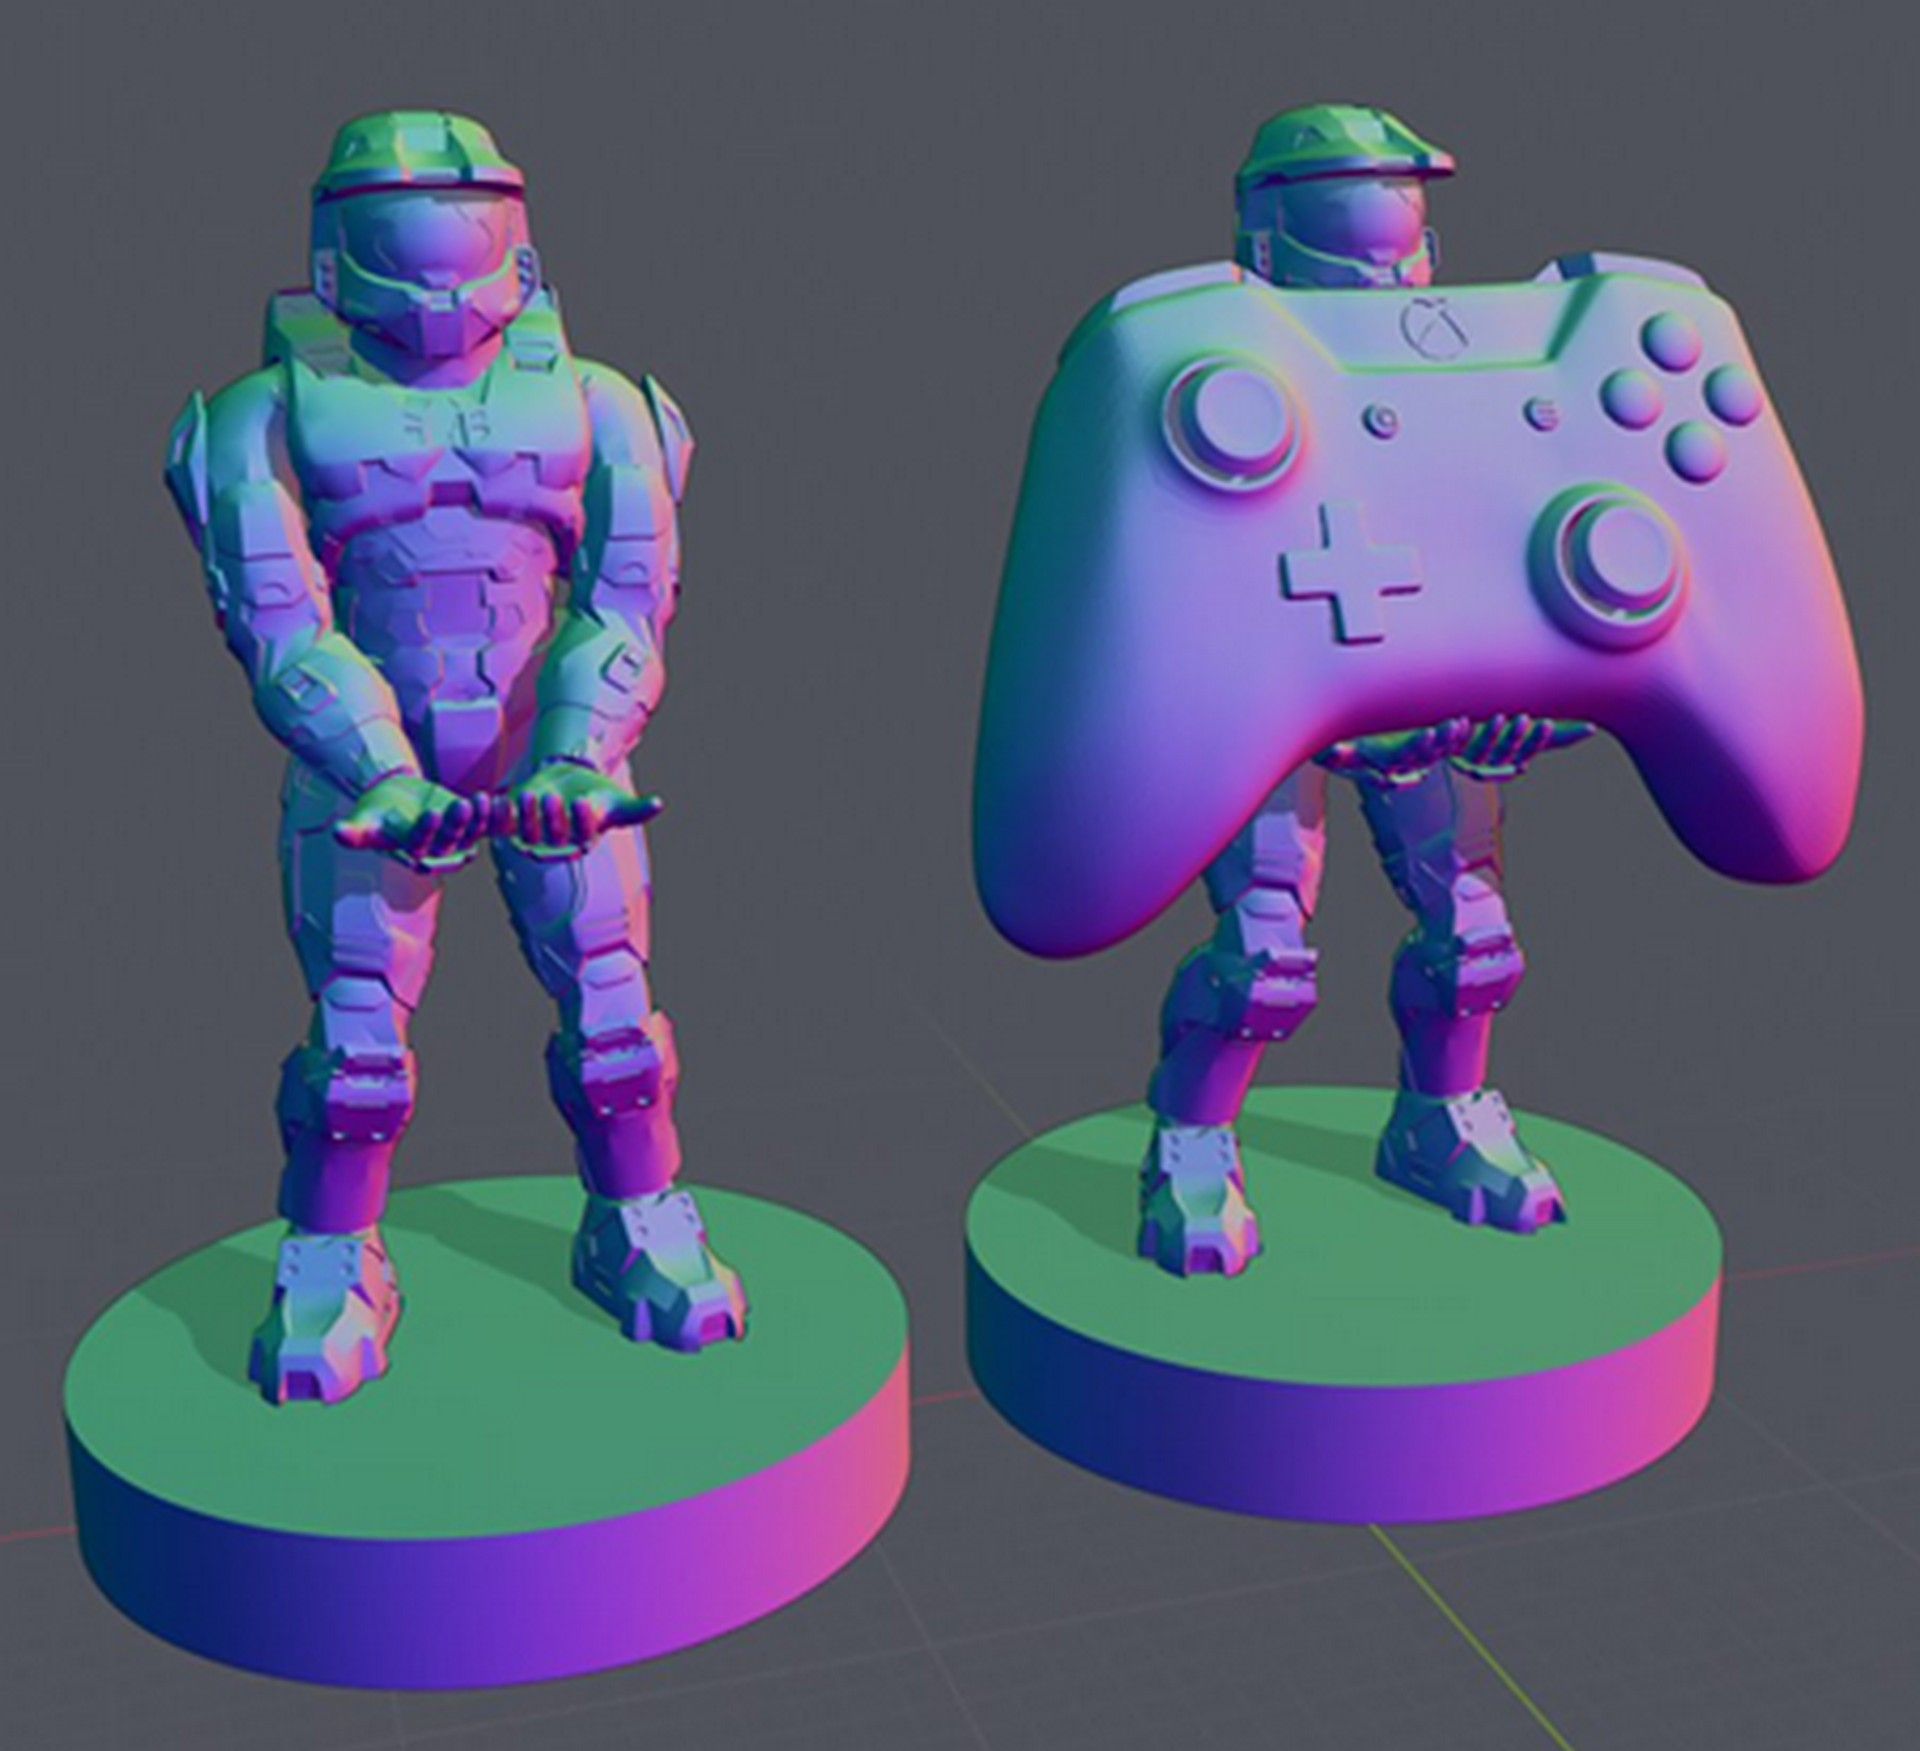 halo  master chief 3d model for printing stand for xbxb/ps controlloer